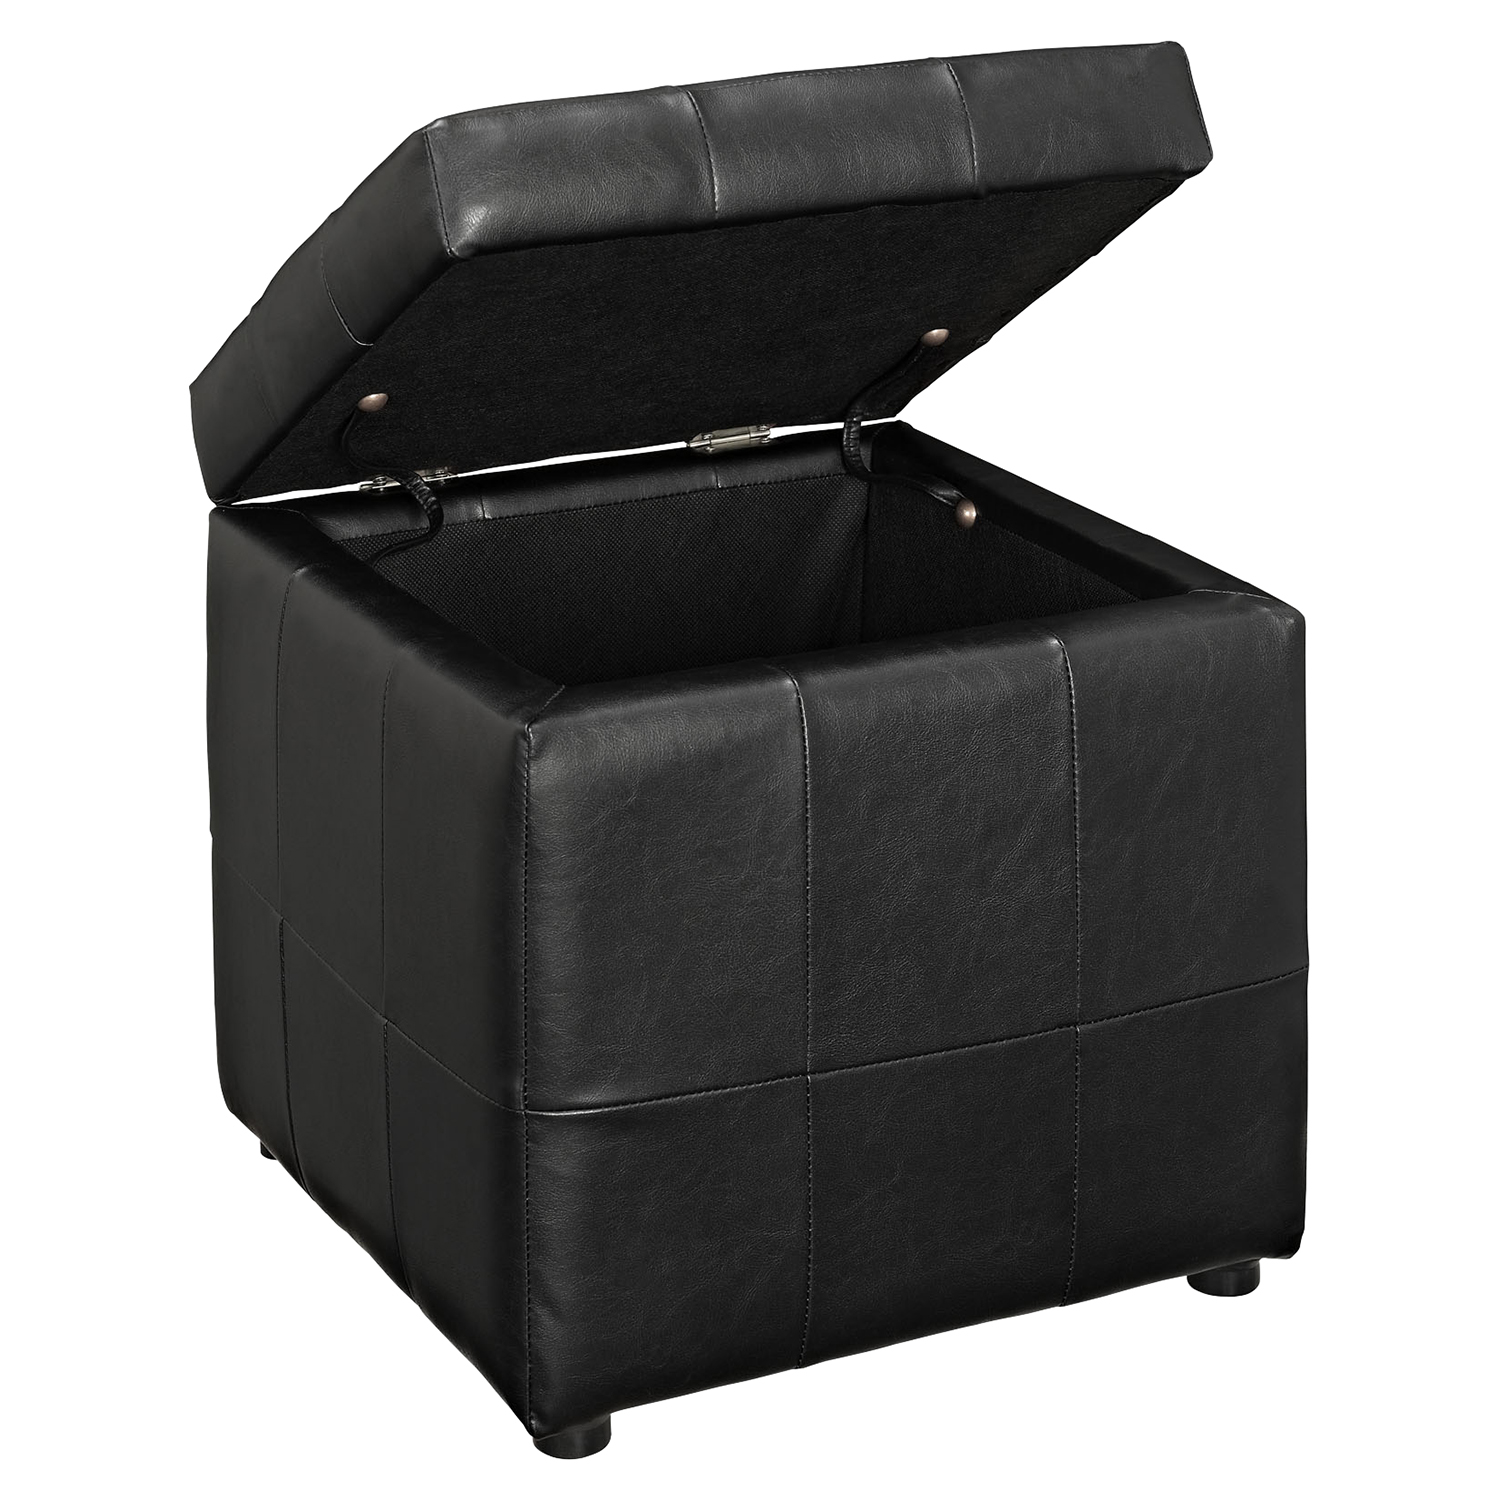 Volt Storage Tufted Ottoman - Black - EEI-1044-BLK